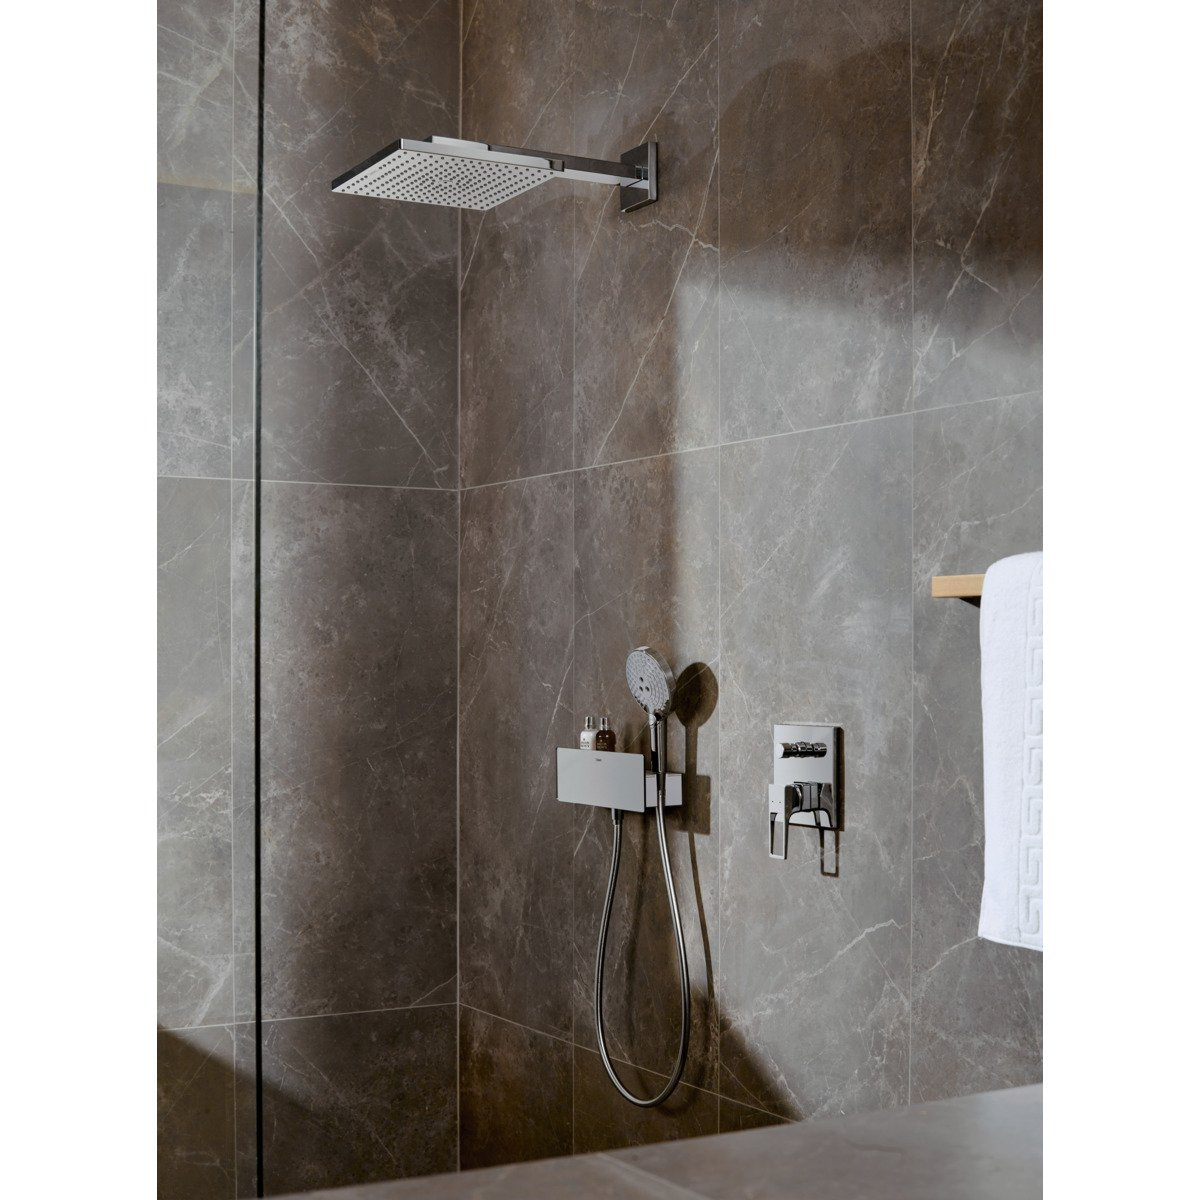 Hansgrohe Grote Badkamer Spiegel Hansgrohe Raindance E Square Hoofddouche E300 1jet M